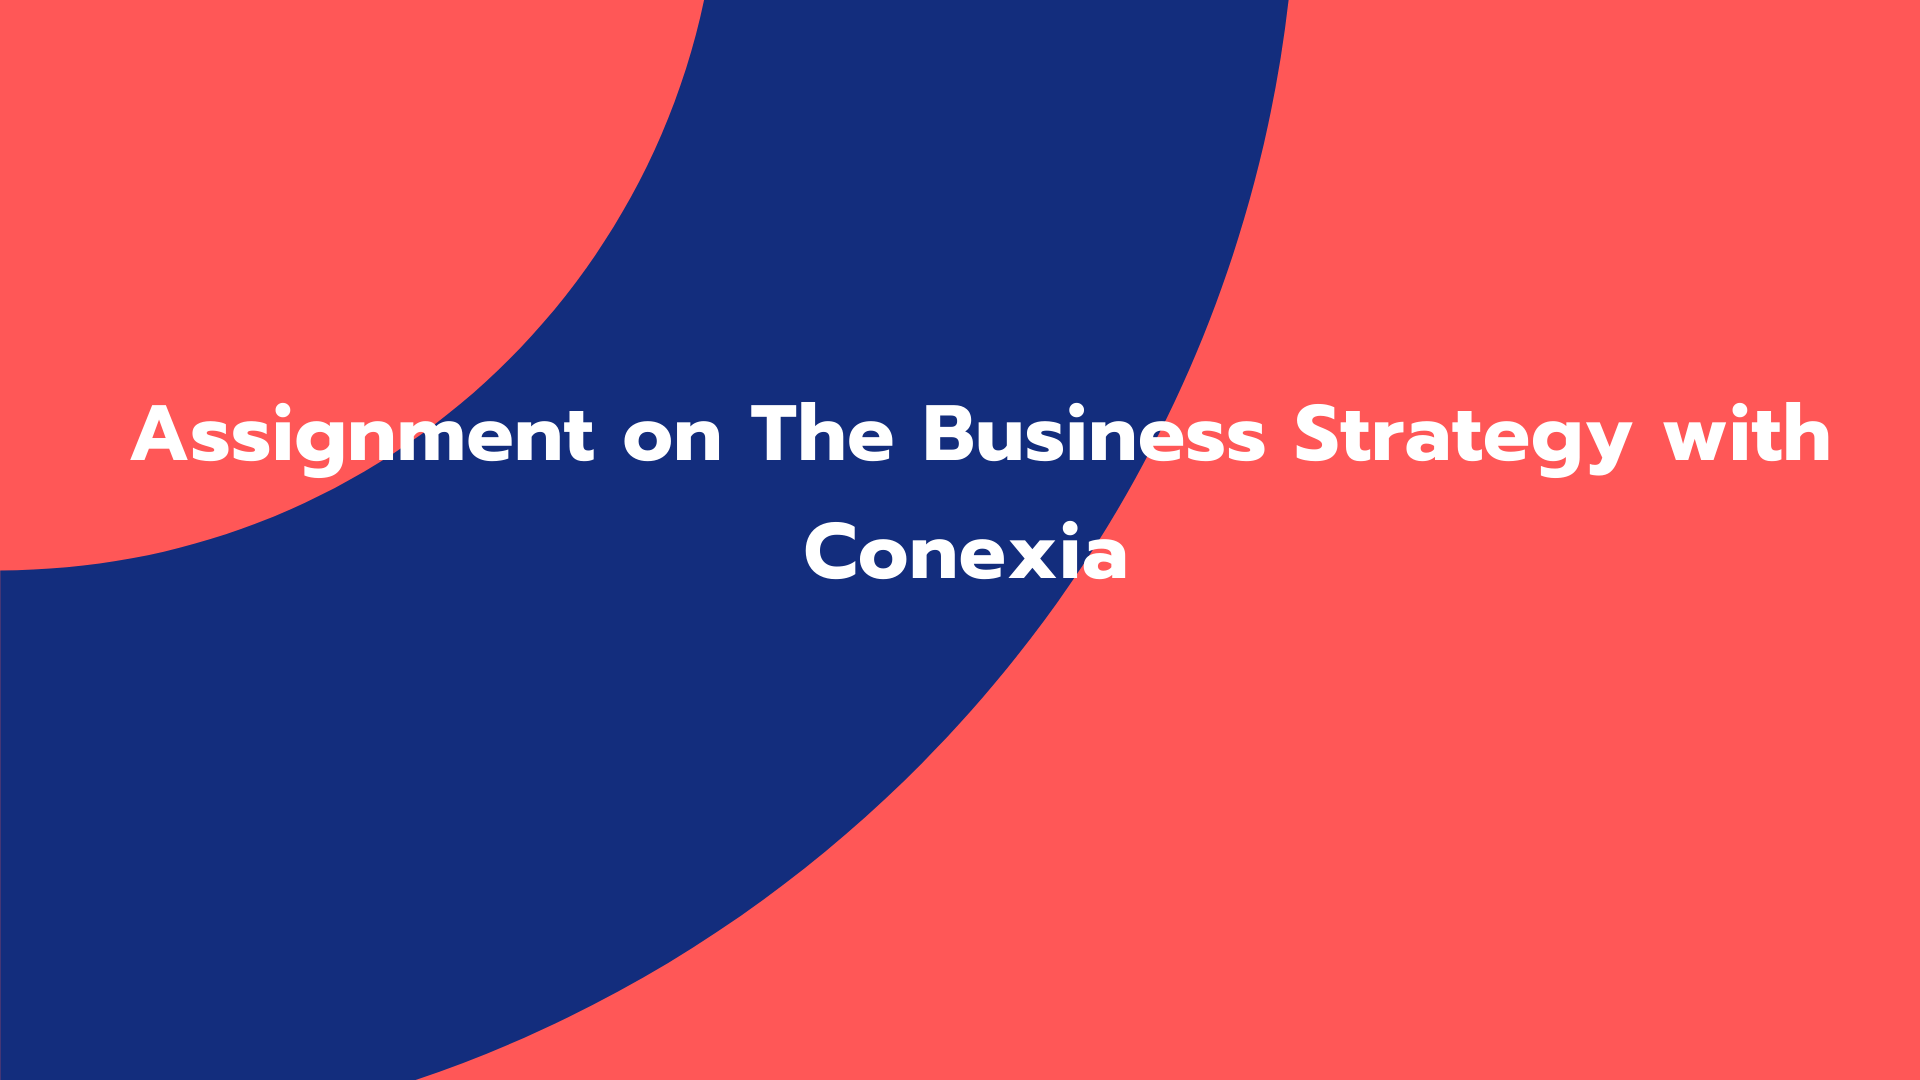 Assignment on The Business Strategy with Conexia